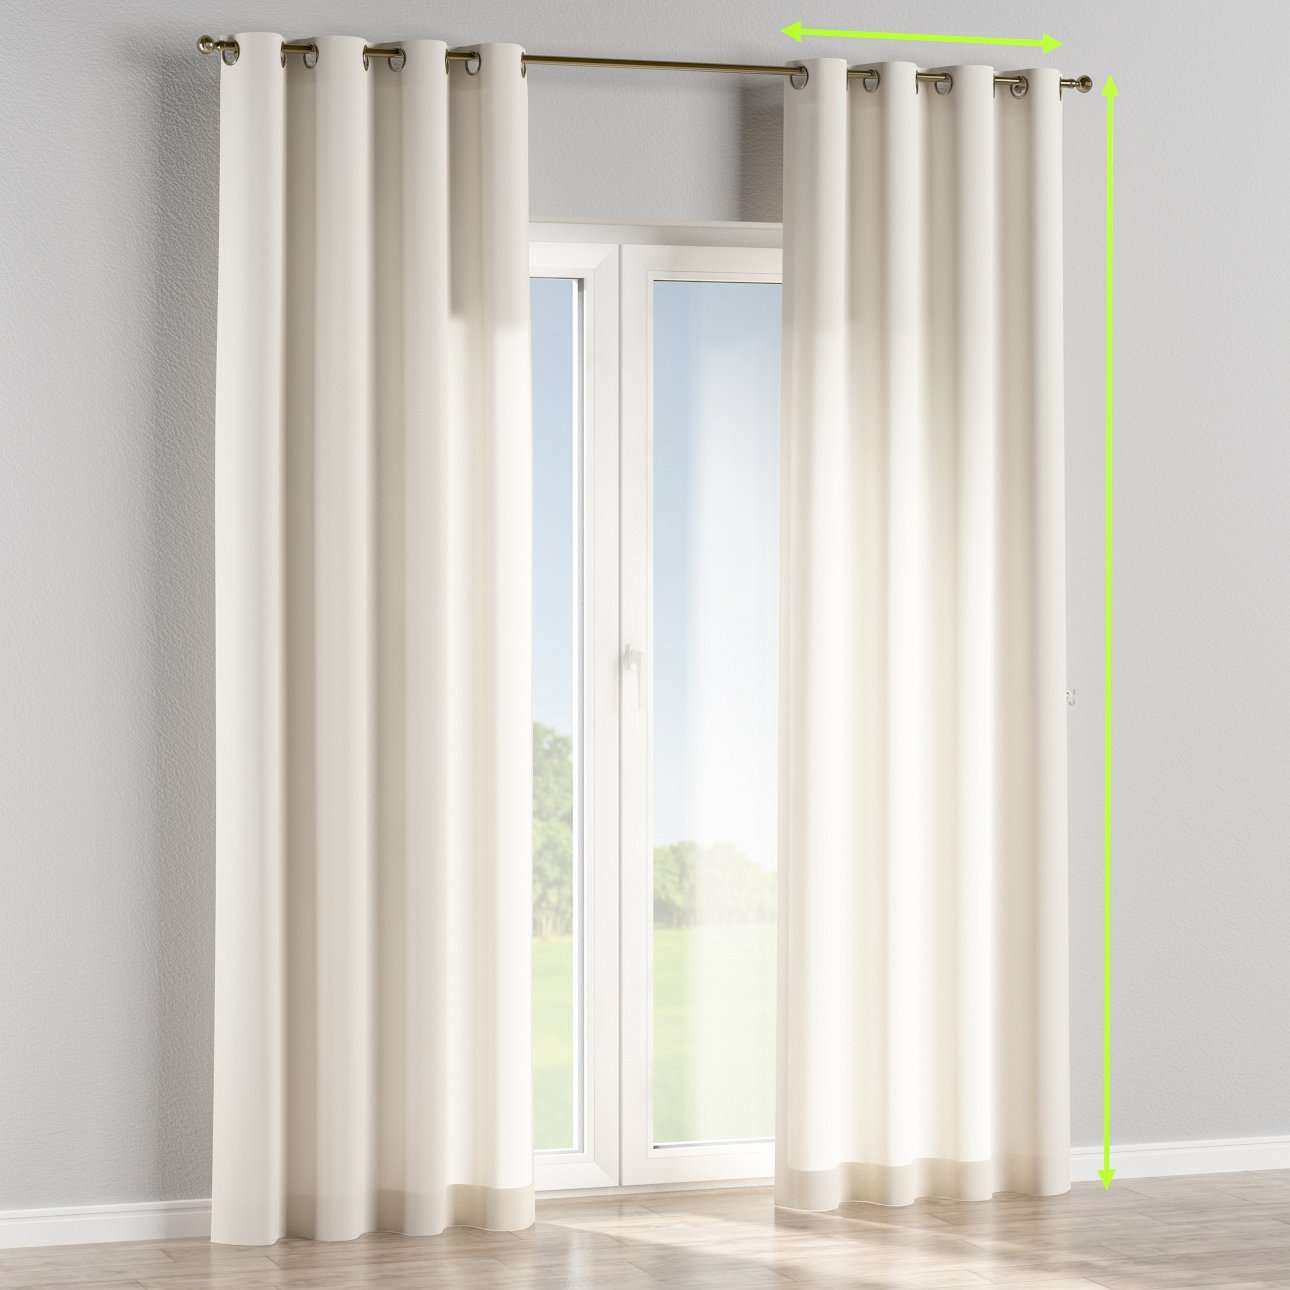 Eyelet lined curtains in collection Comic Book & Geo Prints, fabric: 139-00